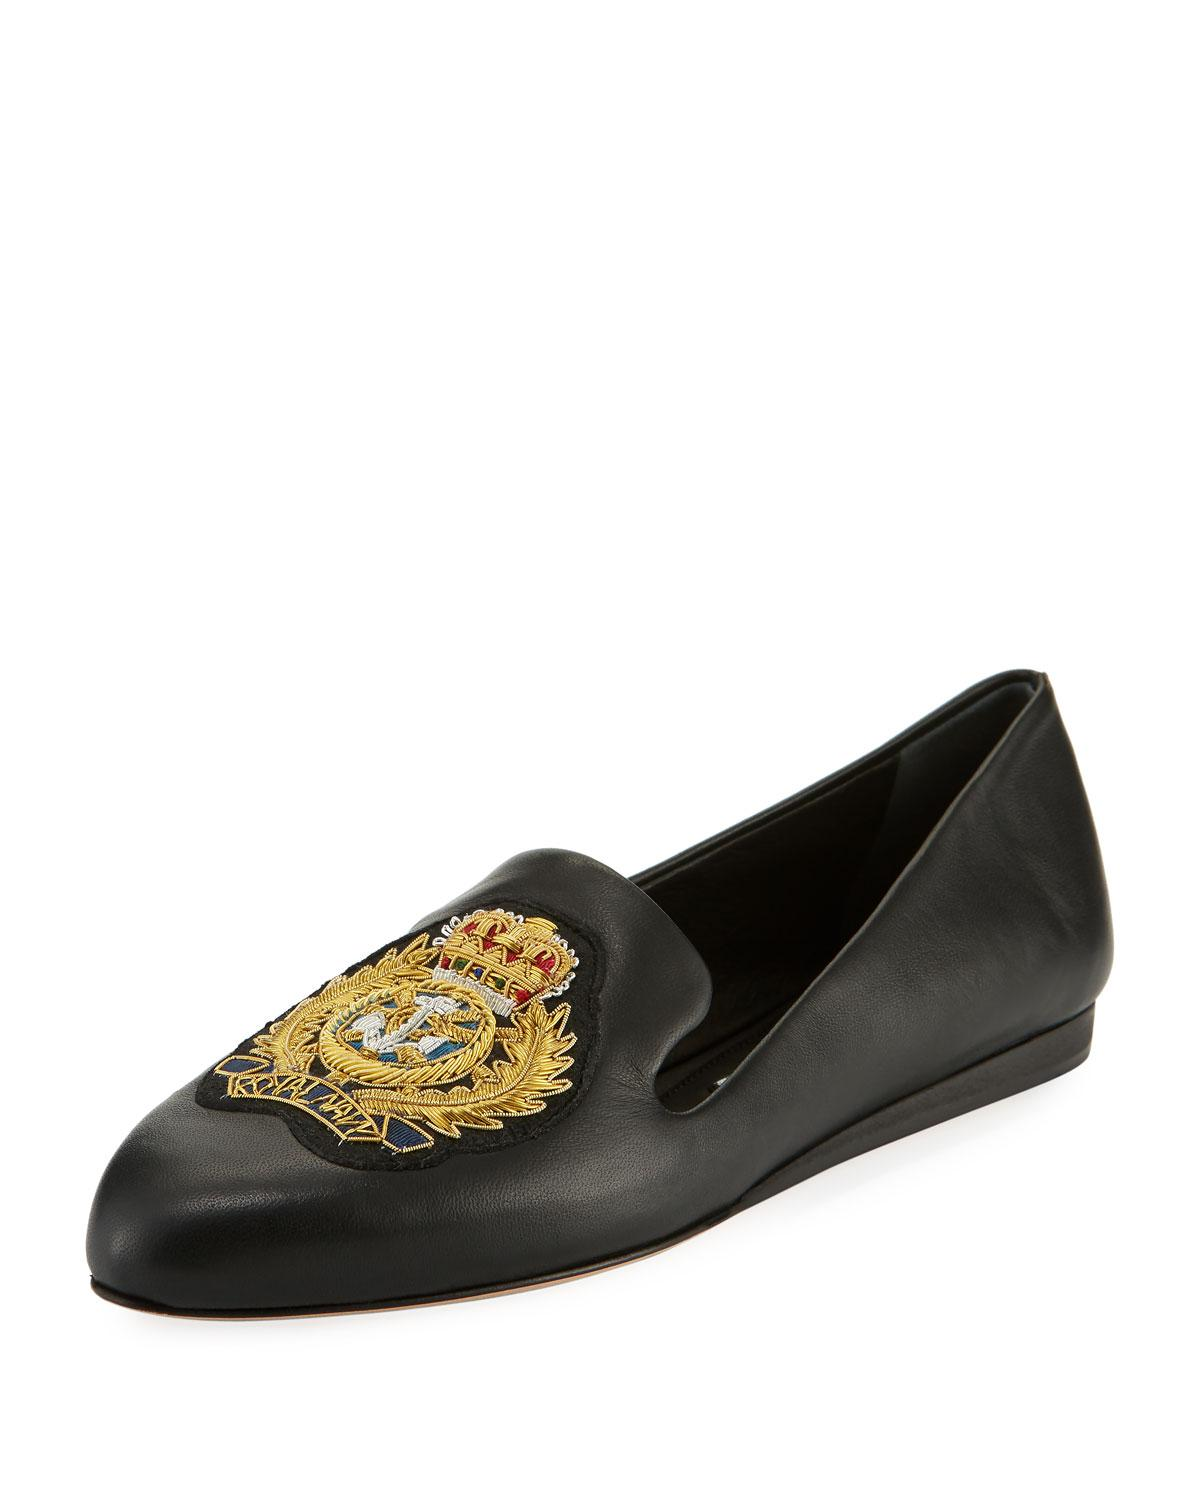 f3fa77962cf Lyst - Veronica Beard Griffin Patch Flat Napa Leather Slip-on ...